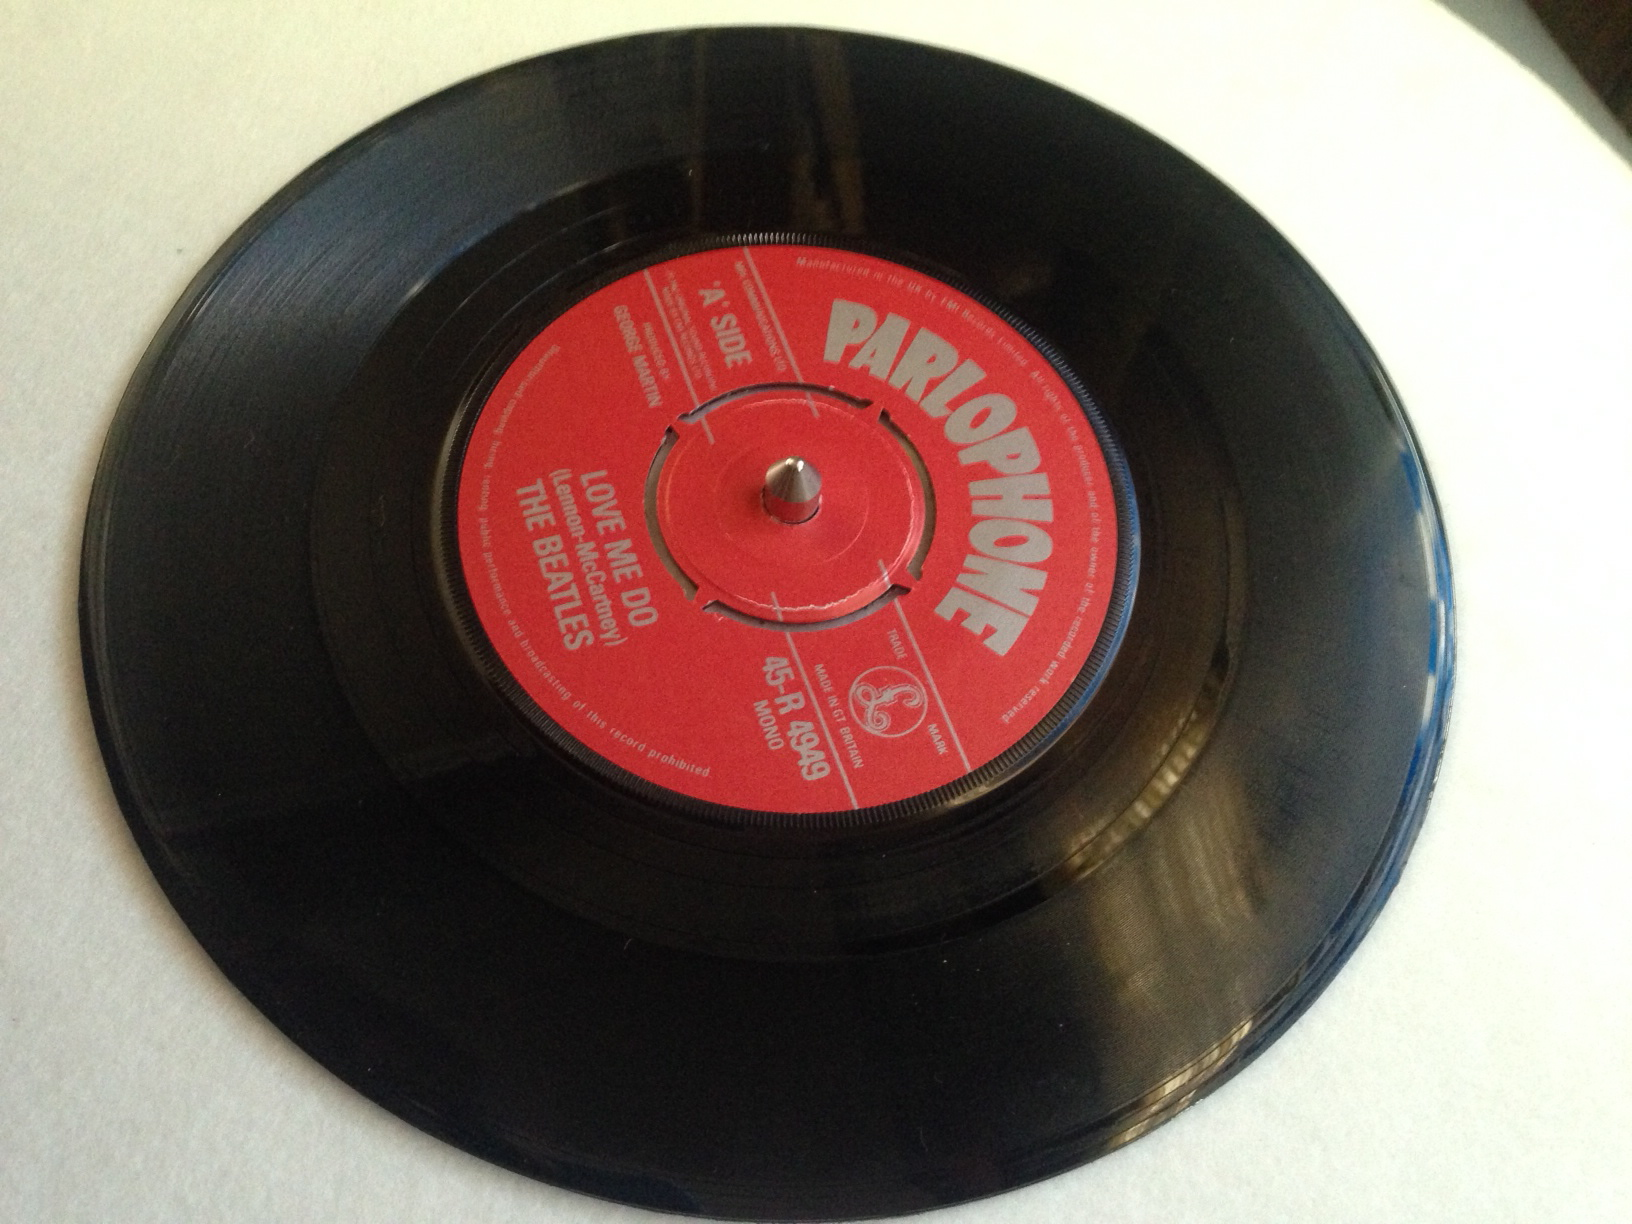 Old records 45 singles Sell Vinyl Records – Selling Old Vinyl Records – Sell Record Albums